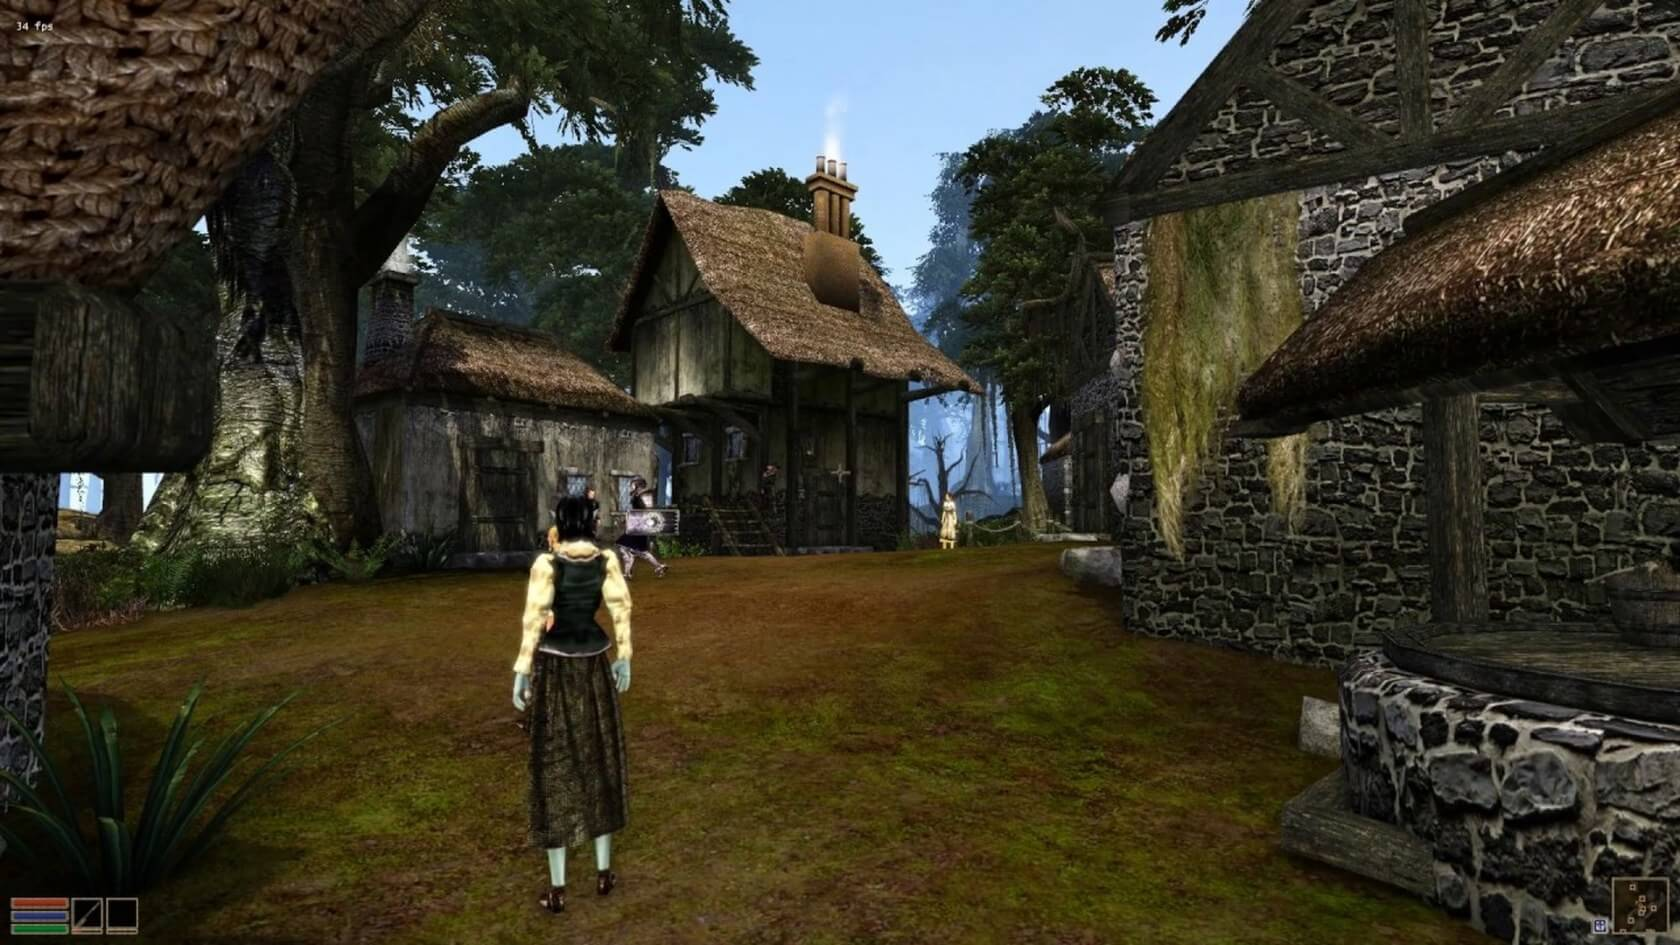 Grab a free copy of Morrowind to celebrate 25 years of The Elder Scrolls